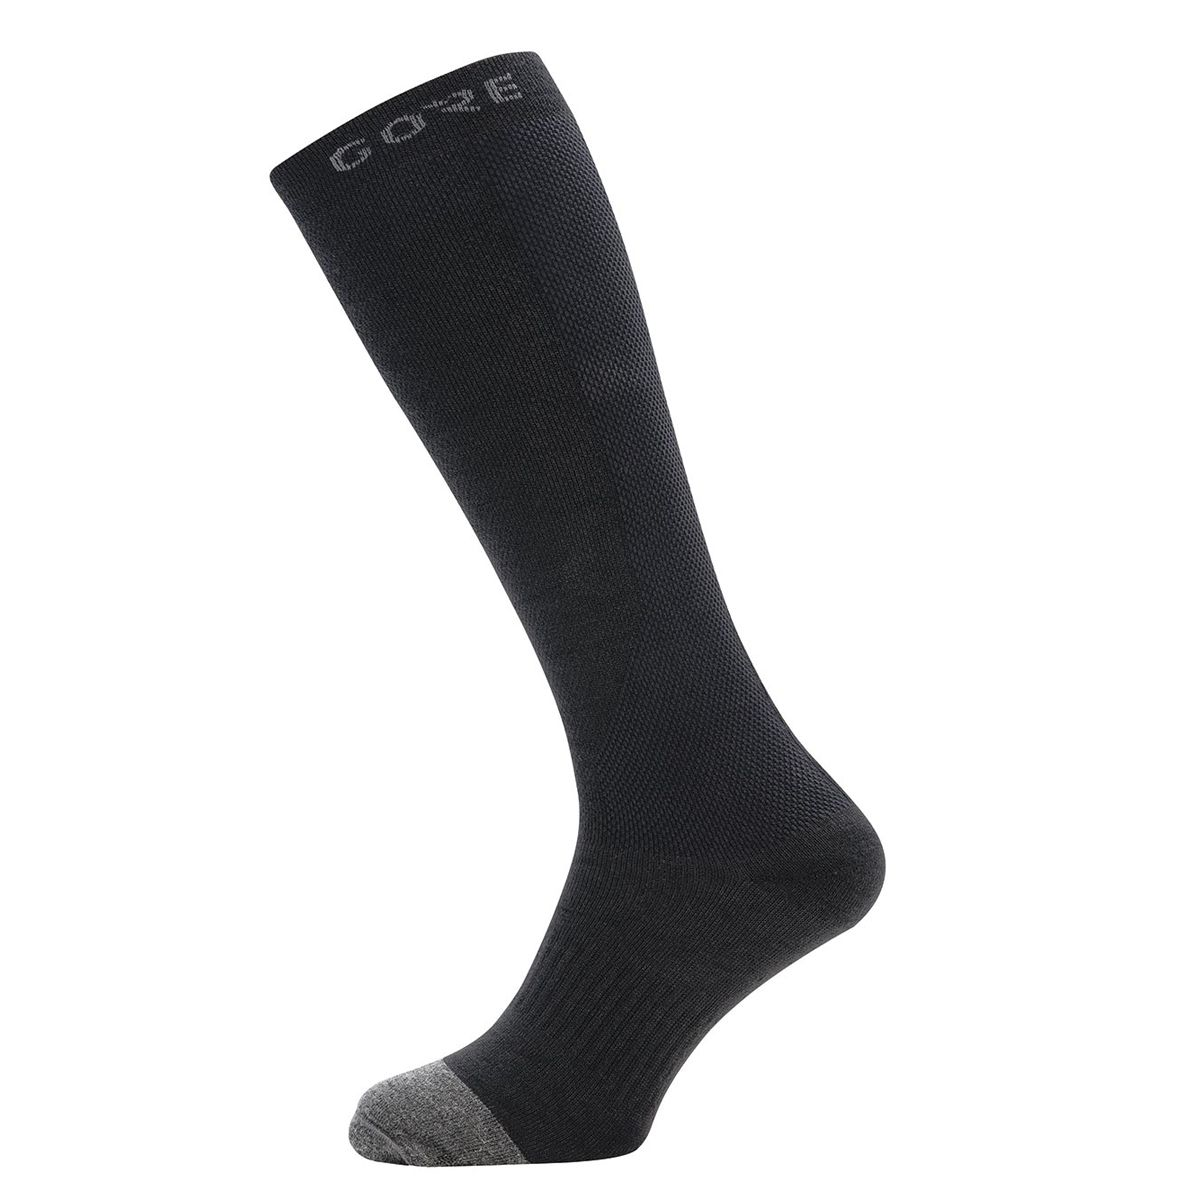 M THERMO LONG SOCKS